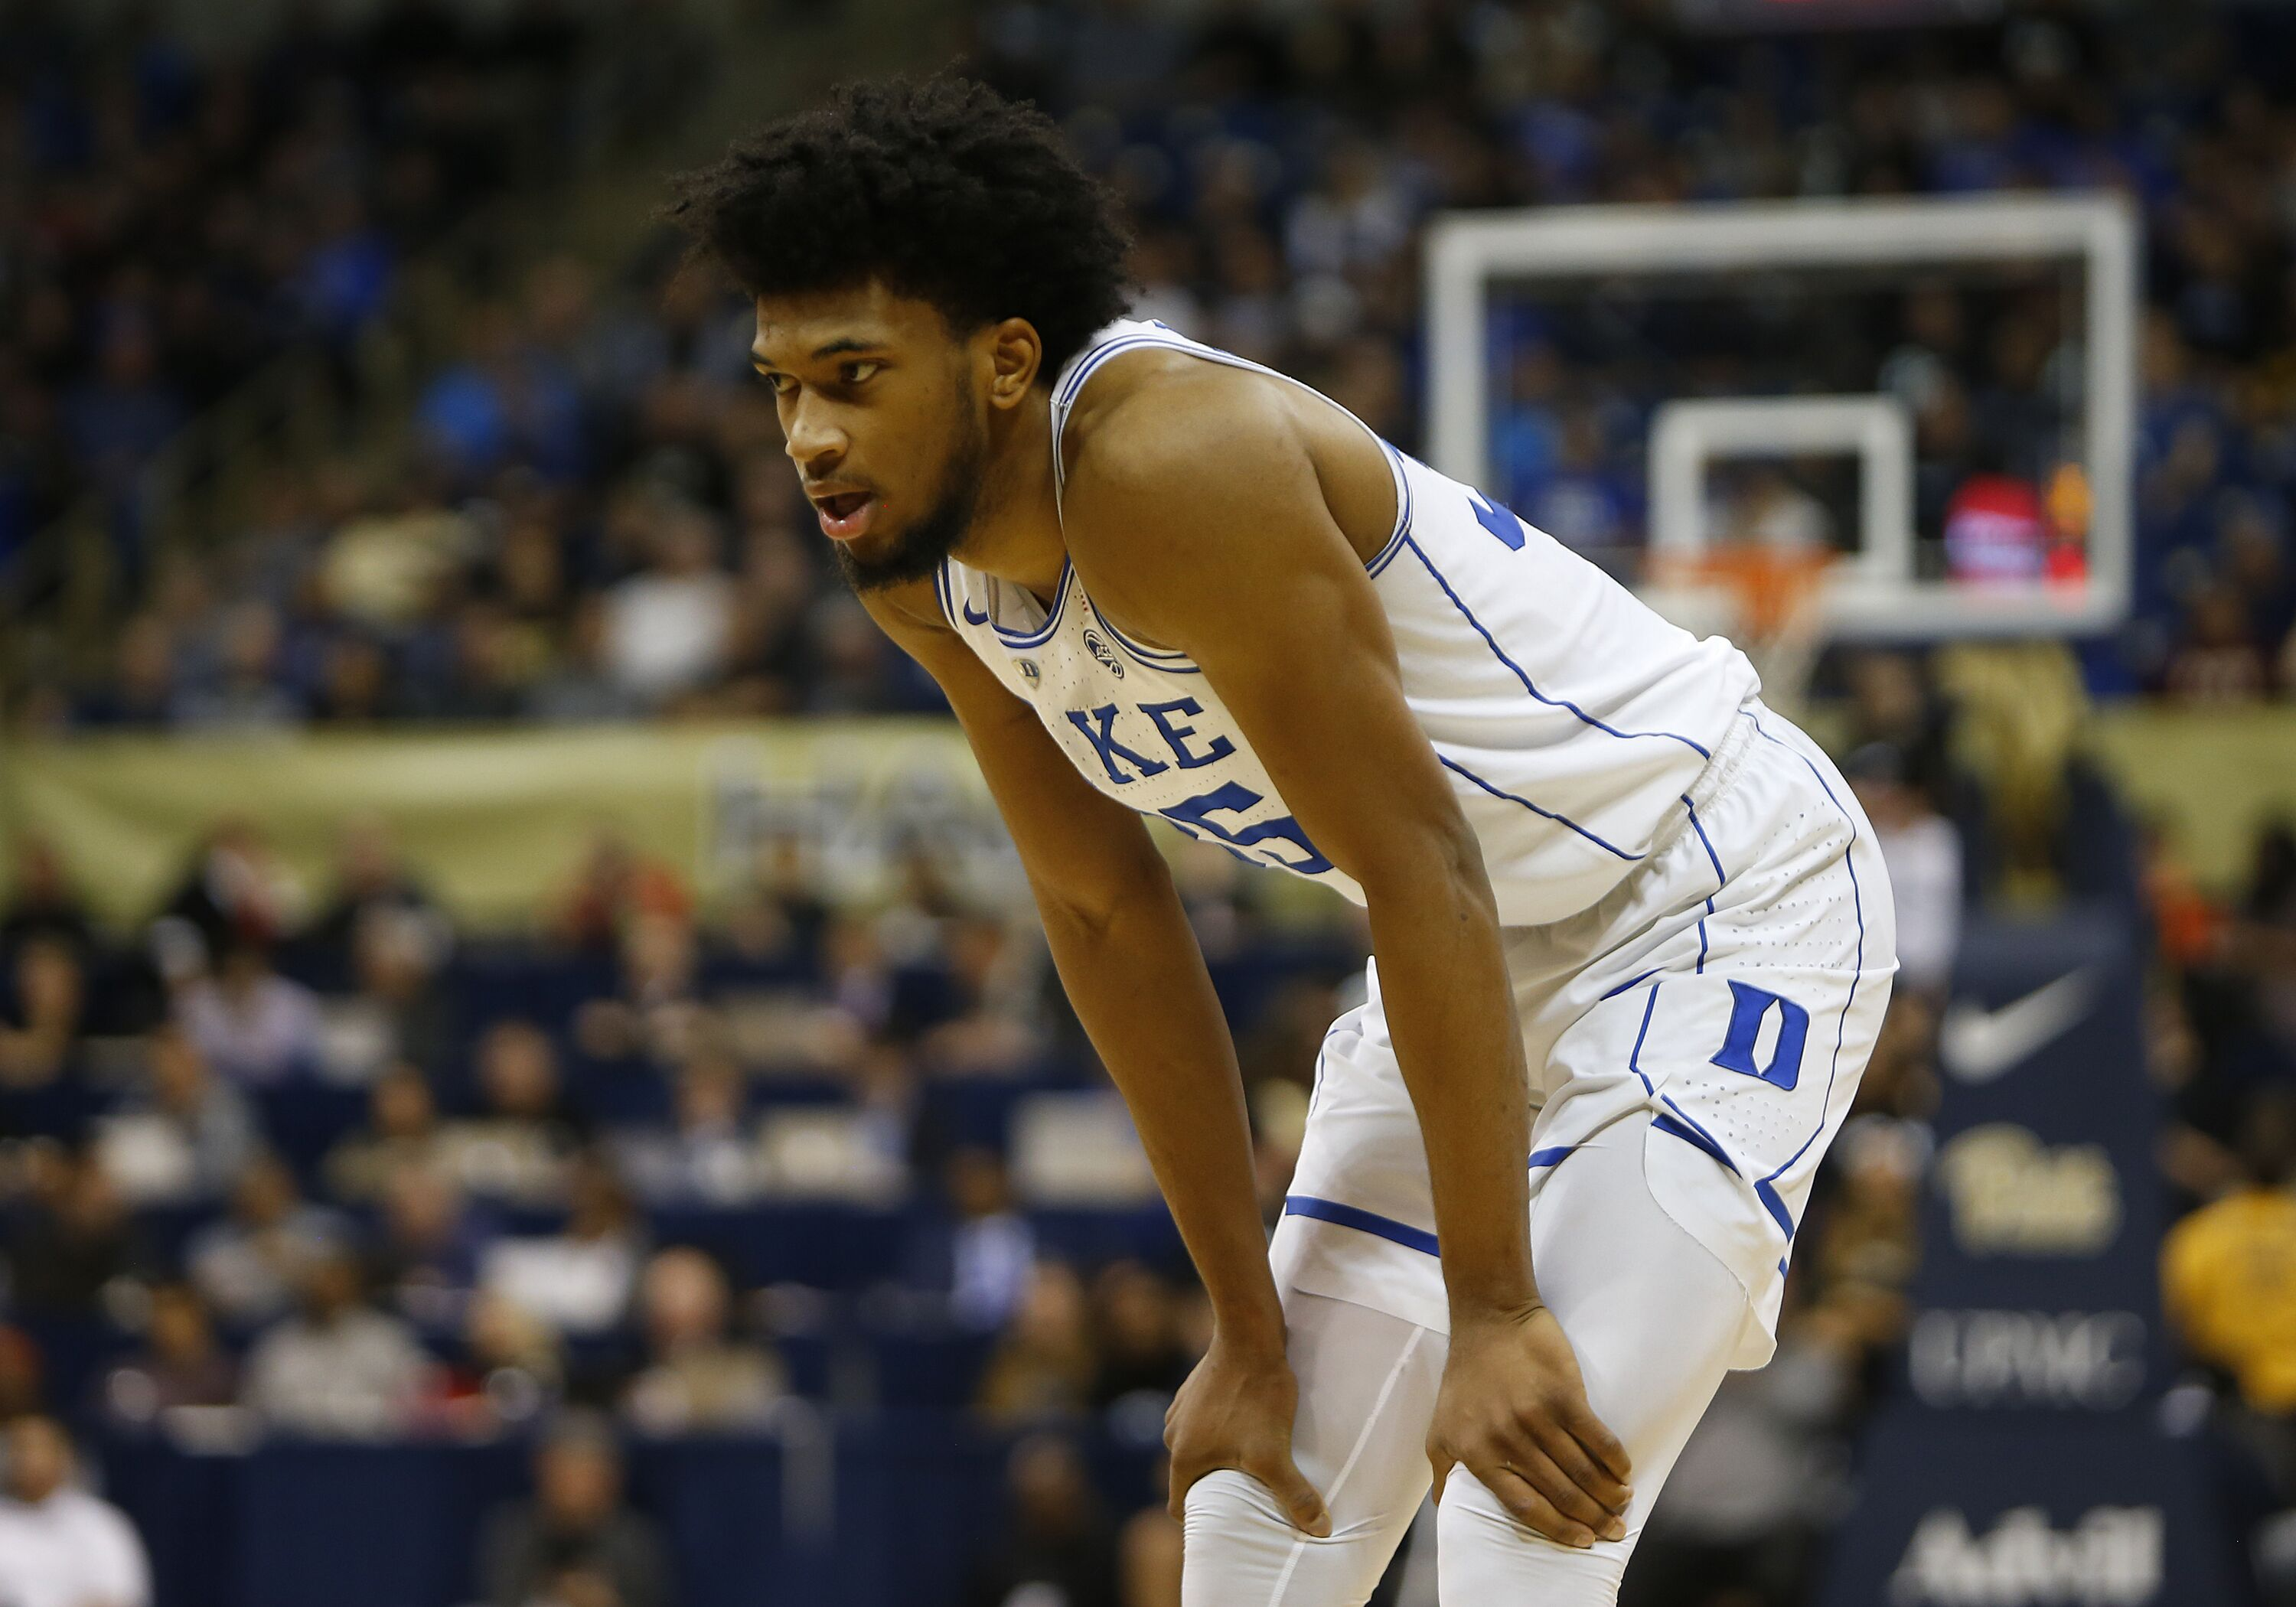 ccf7f2d1952e Duke F Marvin Bagley III to miss game vs. Georgia Tech